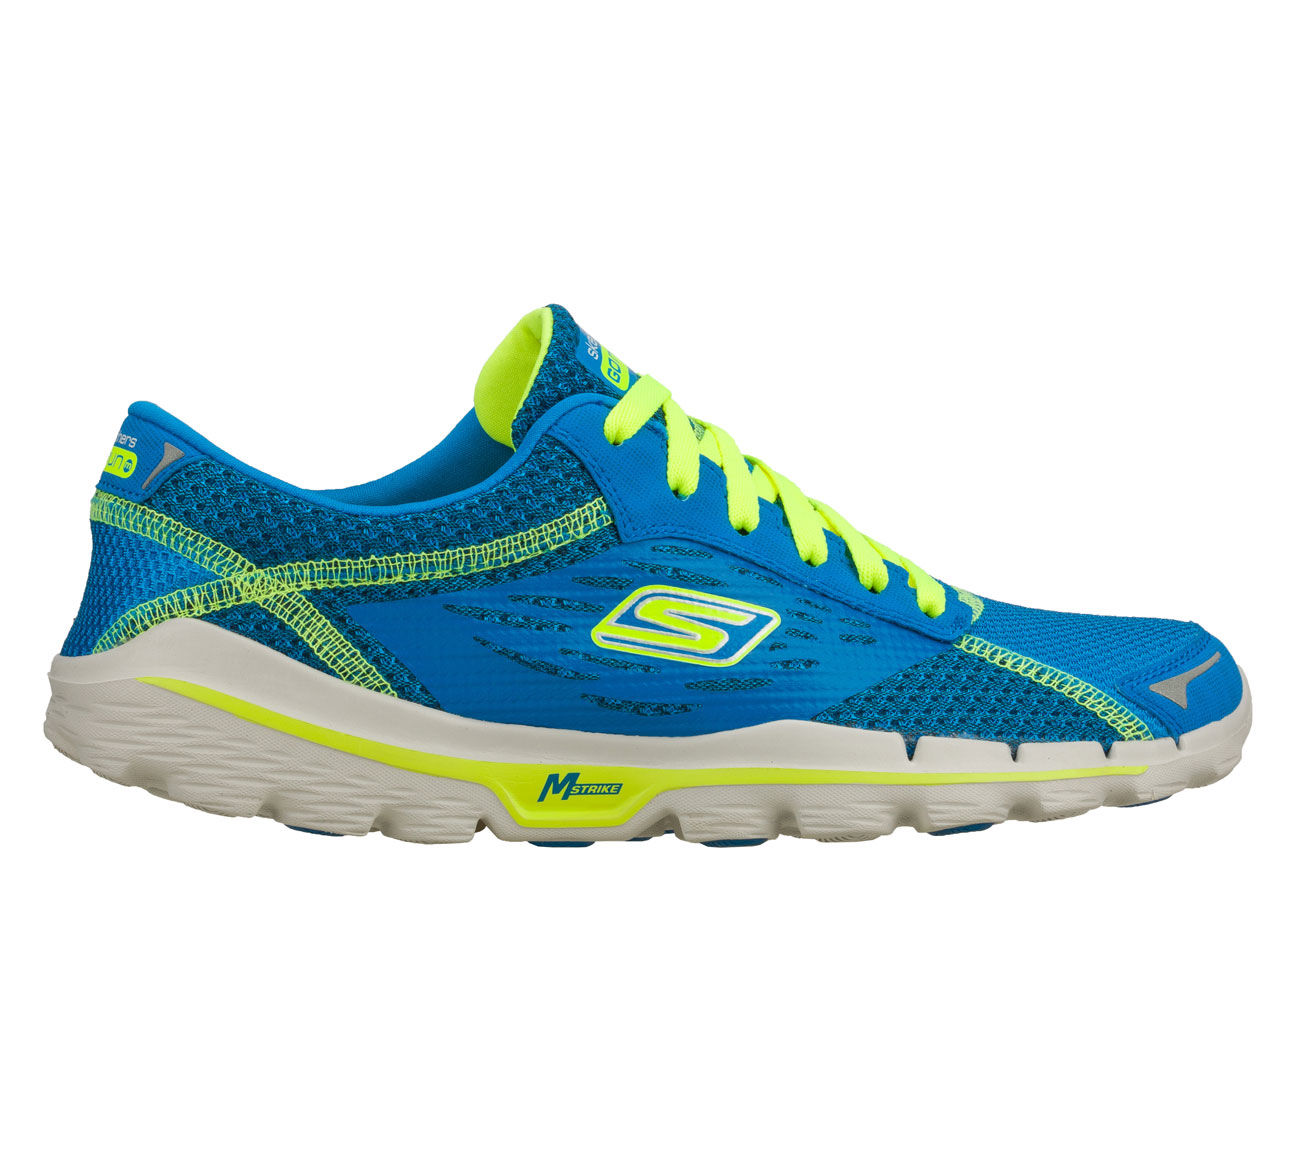 Wiggle | Skechers Go Run 2 Shoes | Internal